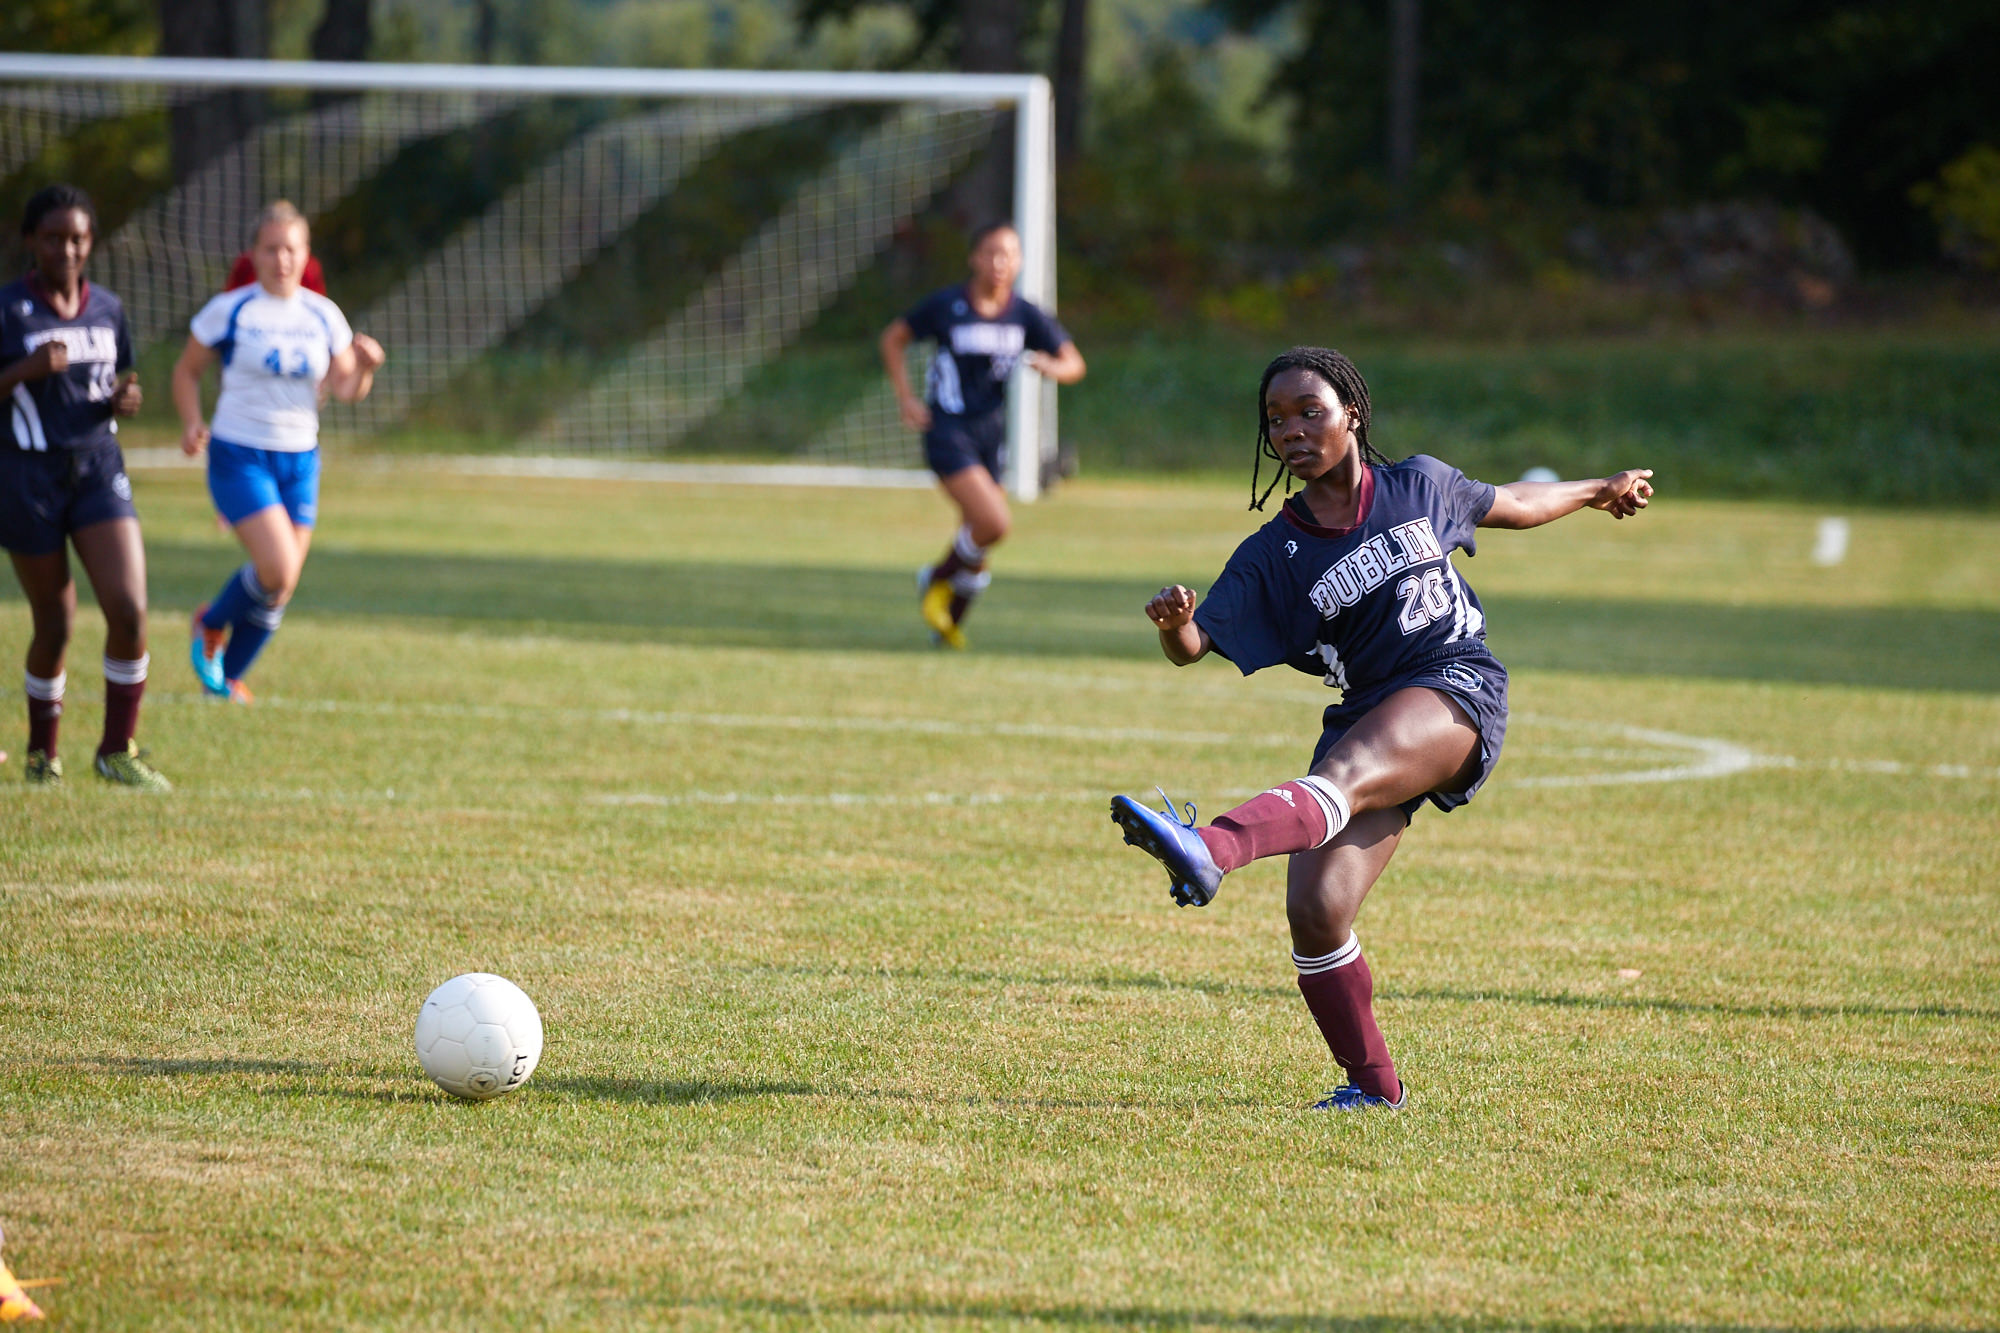 Girls Varsity Soccer vs. Four Rivers Charter Public School - September 23, 2016 - 41531- 000140.jpg